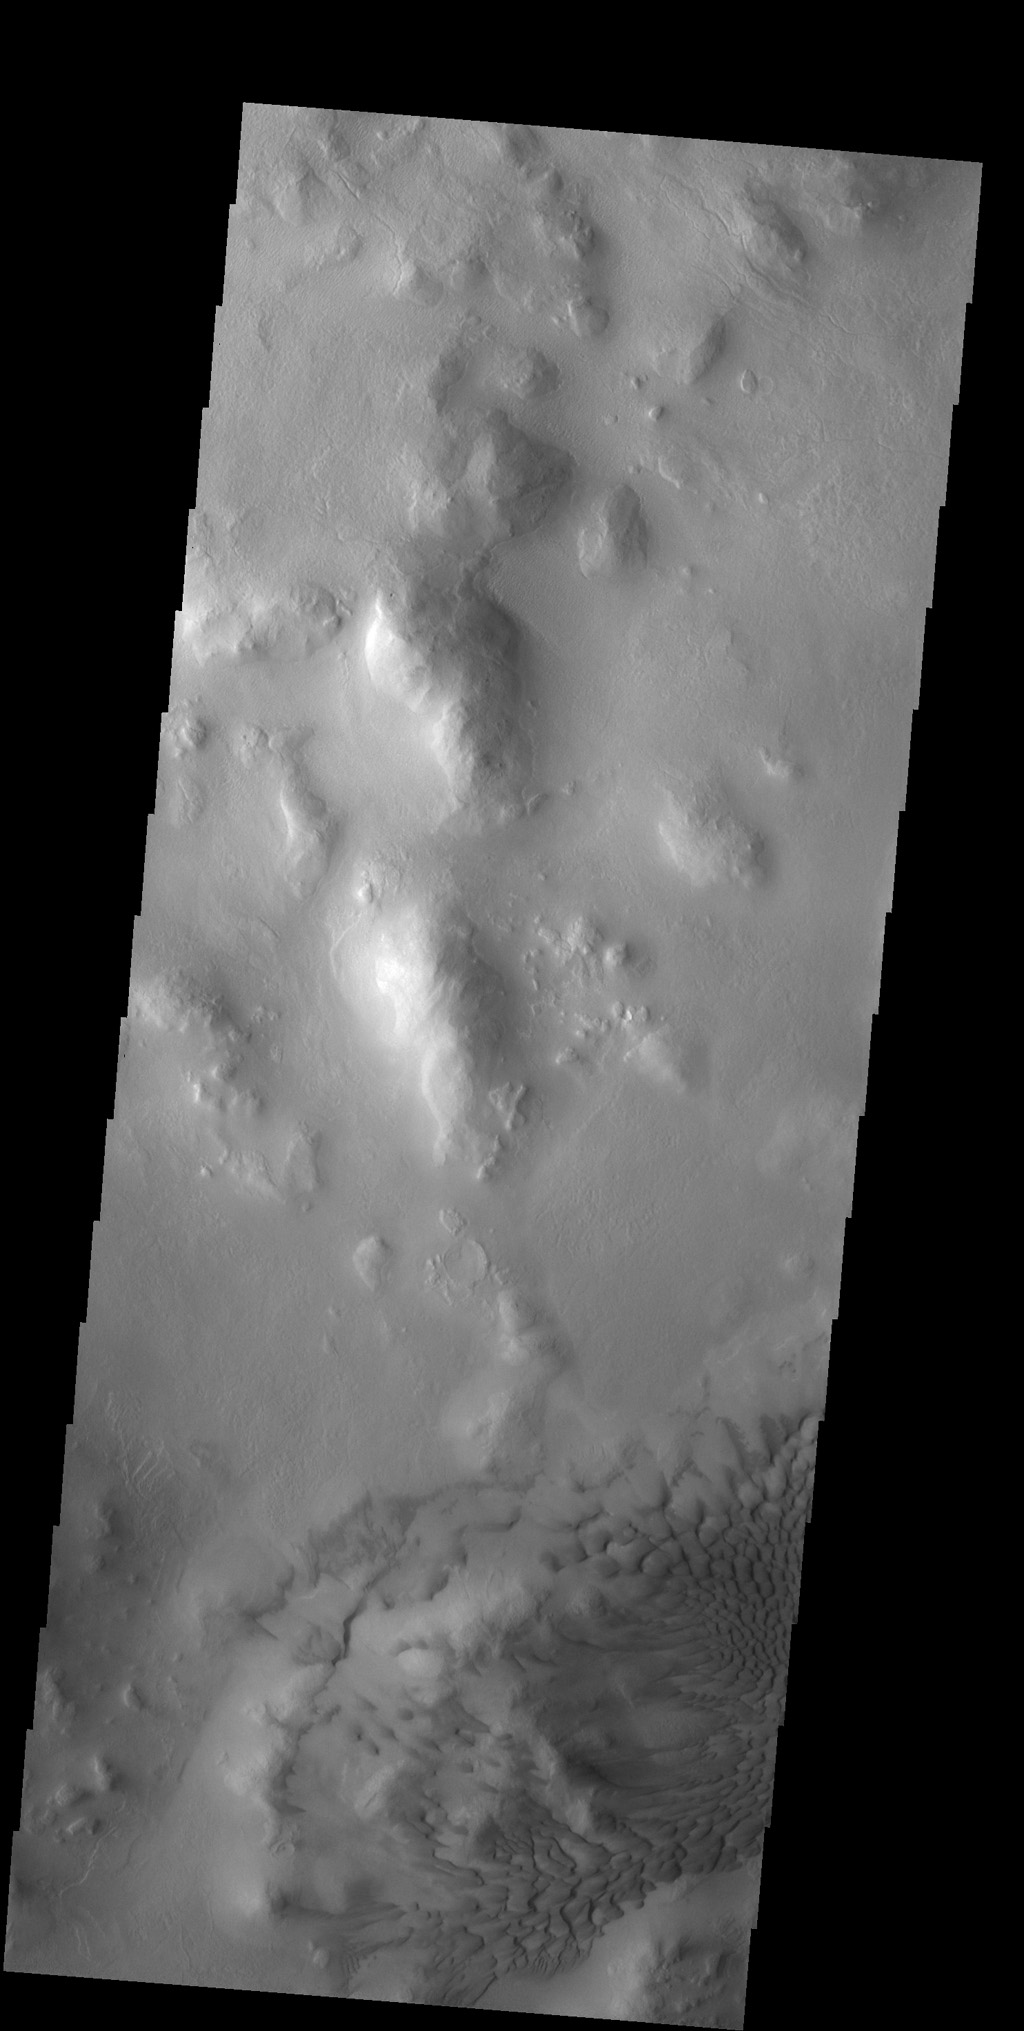 The dunes in this image captured by NASA's 2001 Mars Odyssey spacecraft are located on the floor of Lyot Crater.